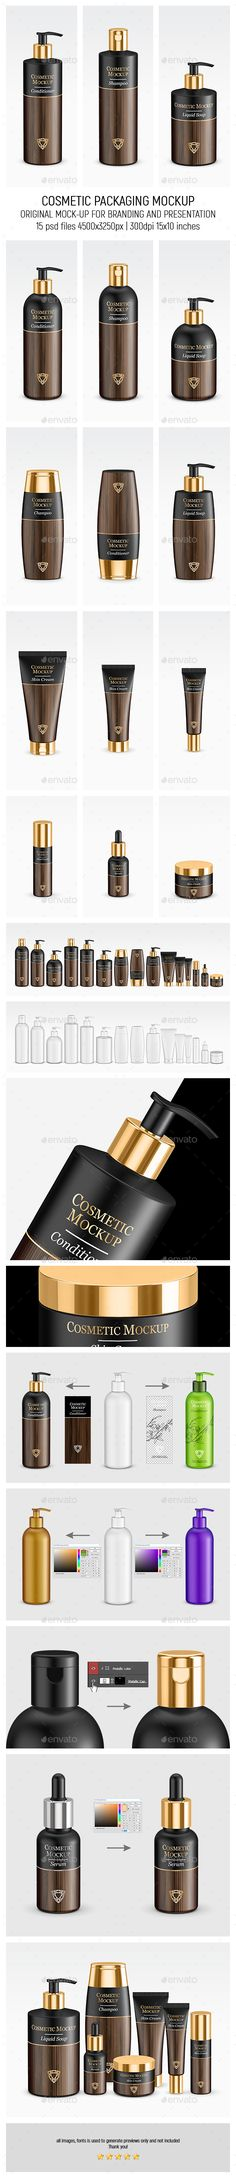 Buy Gold Cosmetic Packaging Mock-up by tirapir on GraphicRiver. Gold Cosmetic Packaging Mock-up Original gold cosmetic packaging mock-up for branding and presentation.